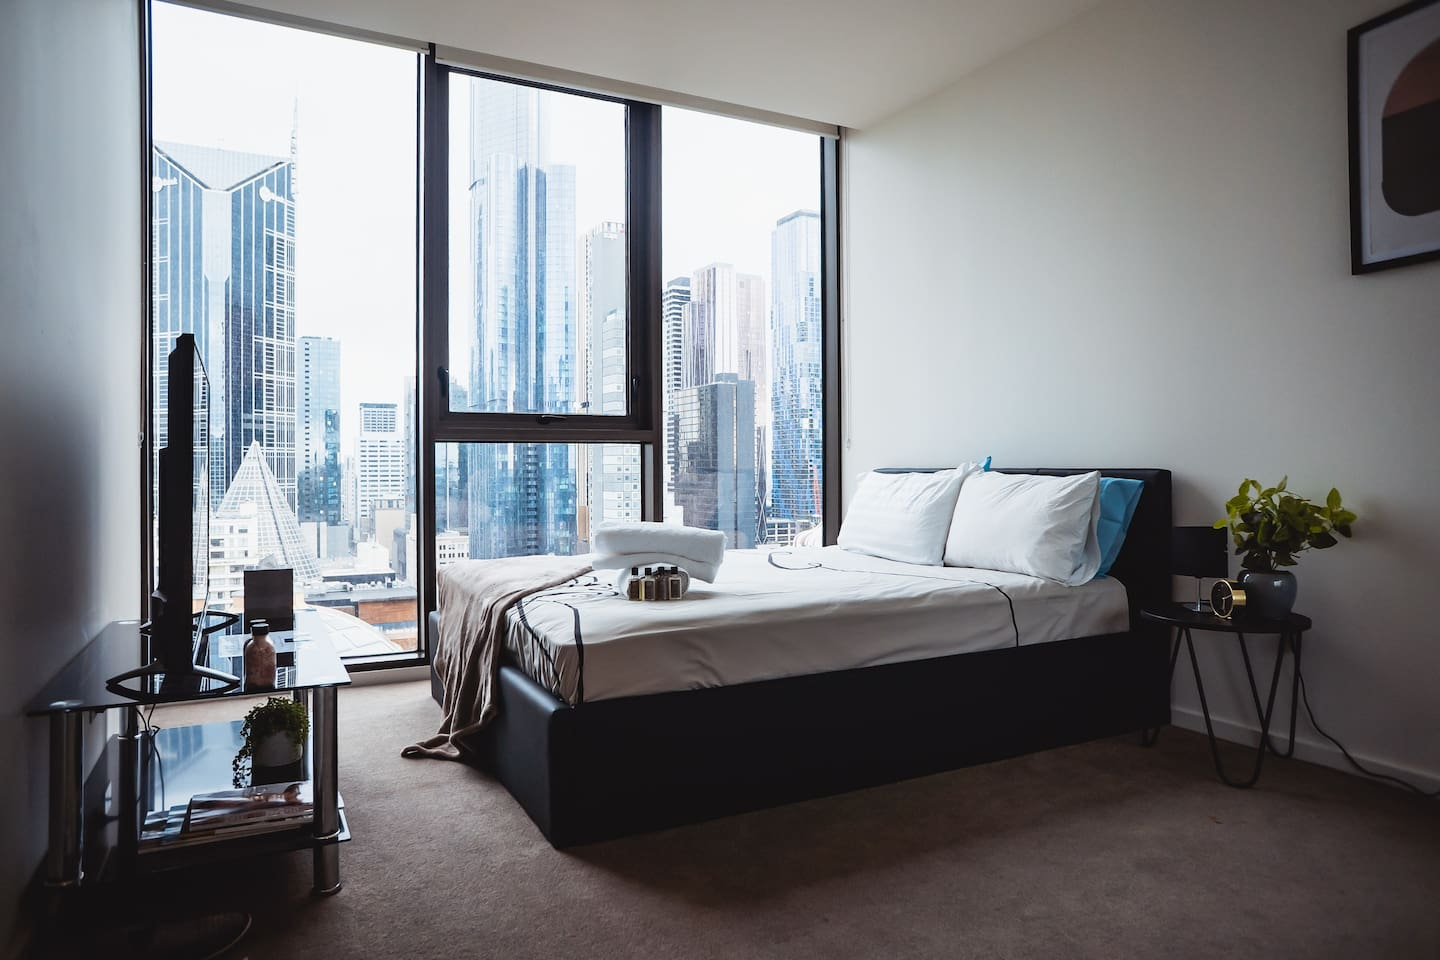 Spacious bedroom with queen bed, 50 inch Smart TV with Netflix, cabinets to store luggage and clothing, and amazing views of Melbourne City